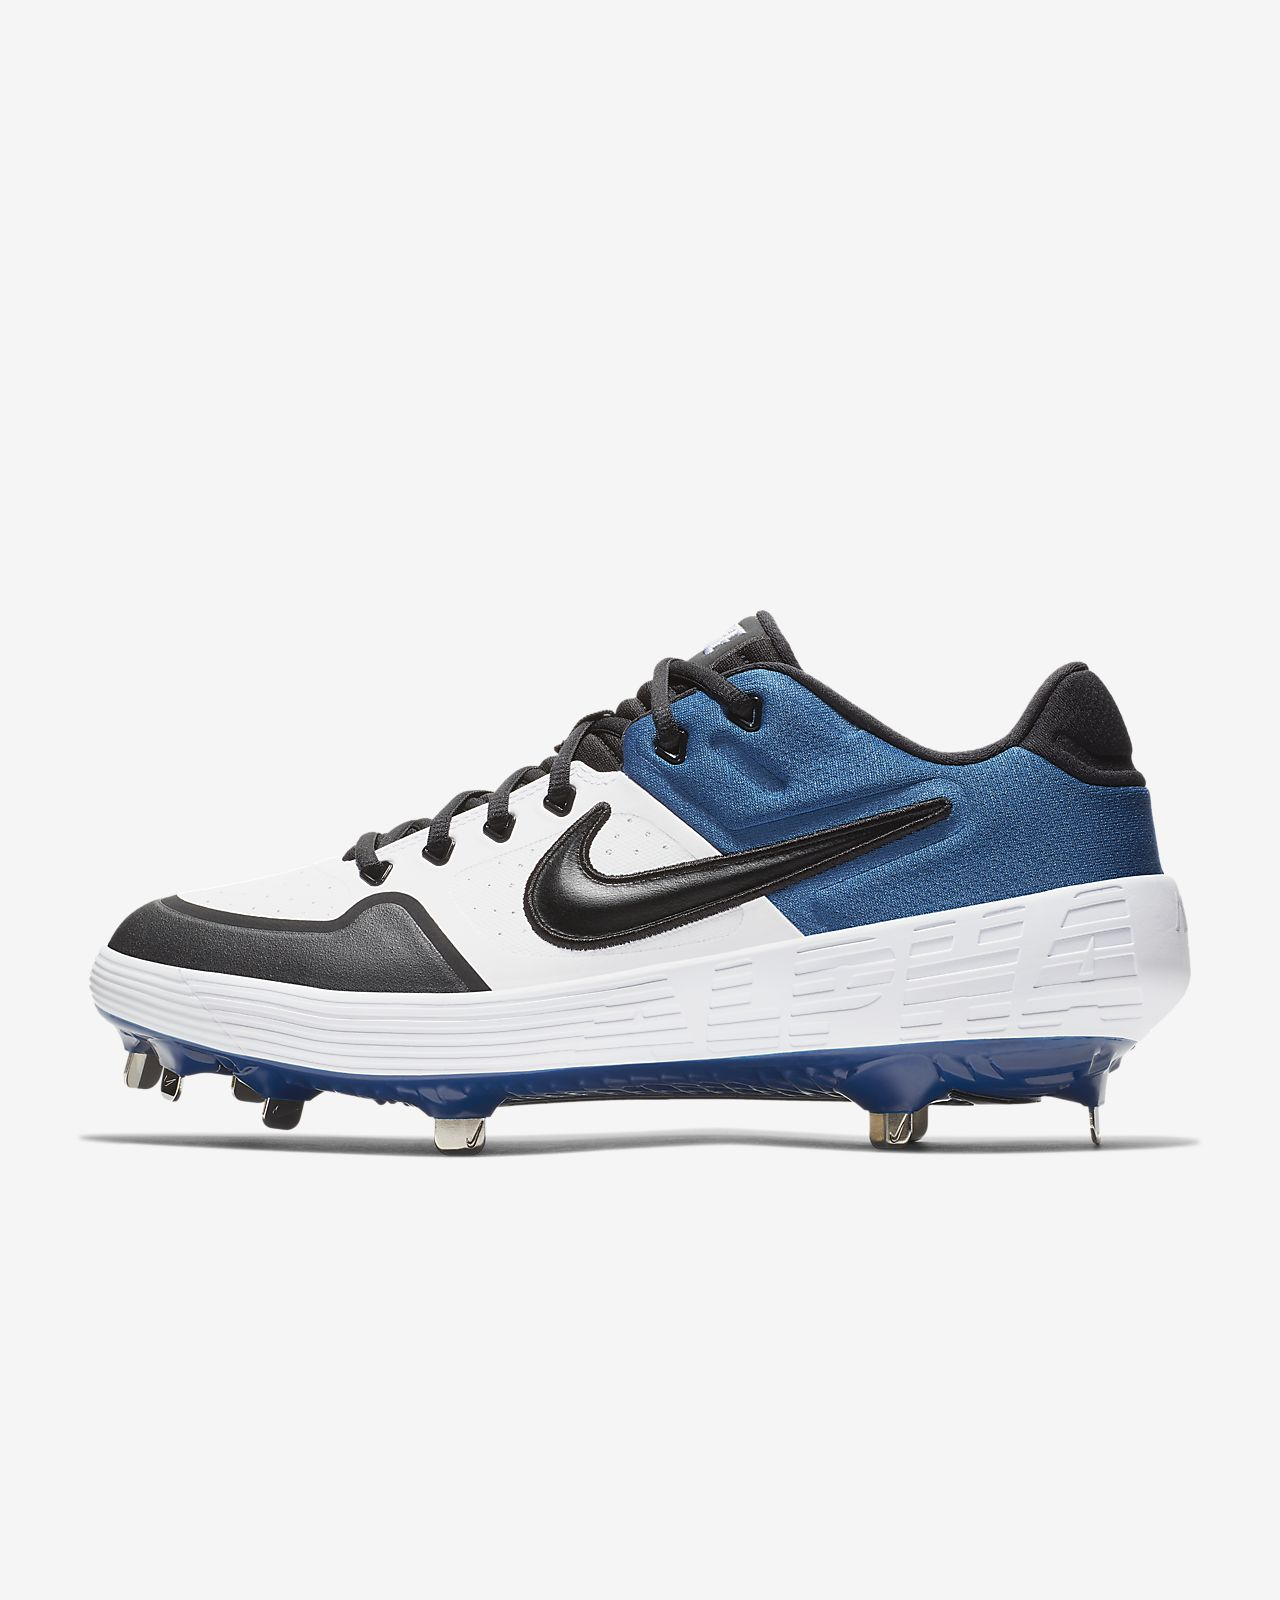 Nike Alpha Huarache Elite 2 Low Baseball Cleat